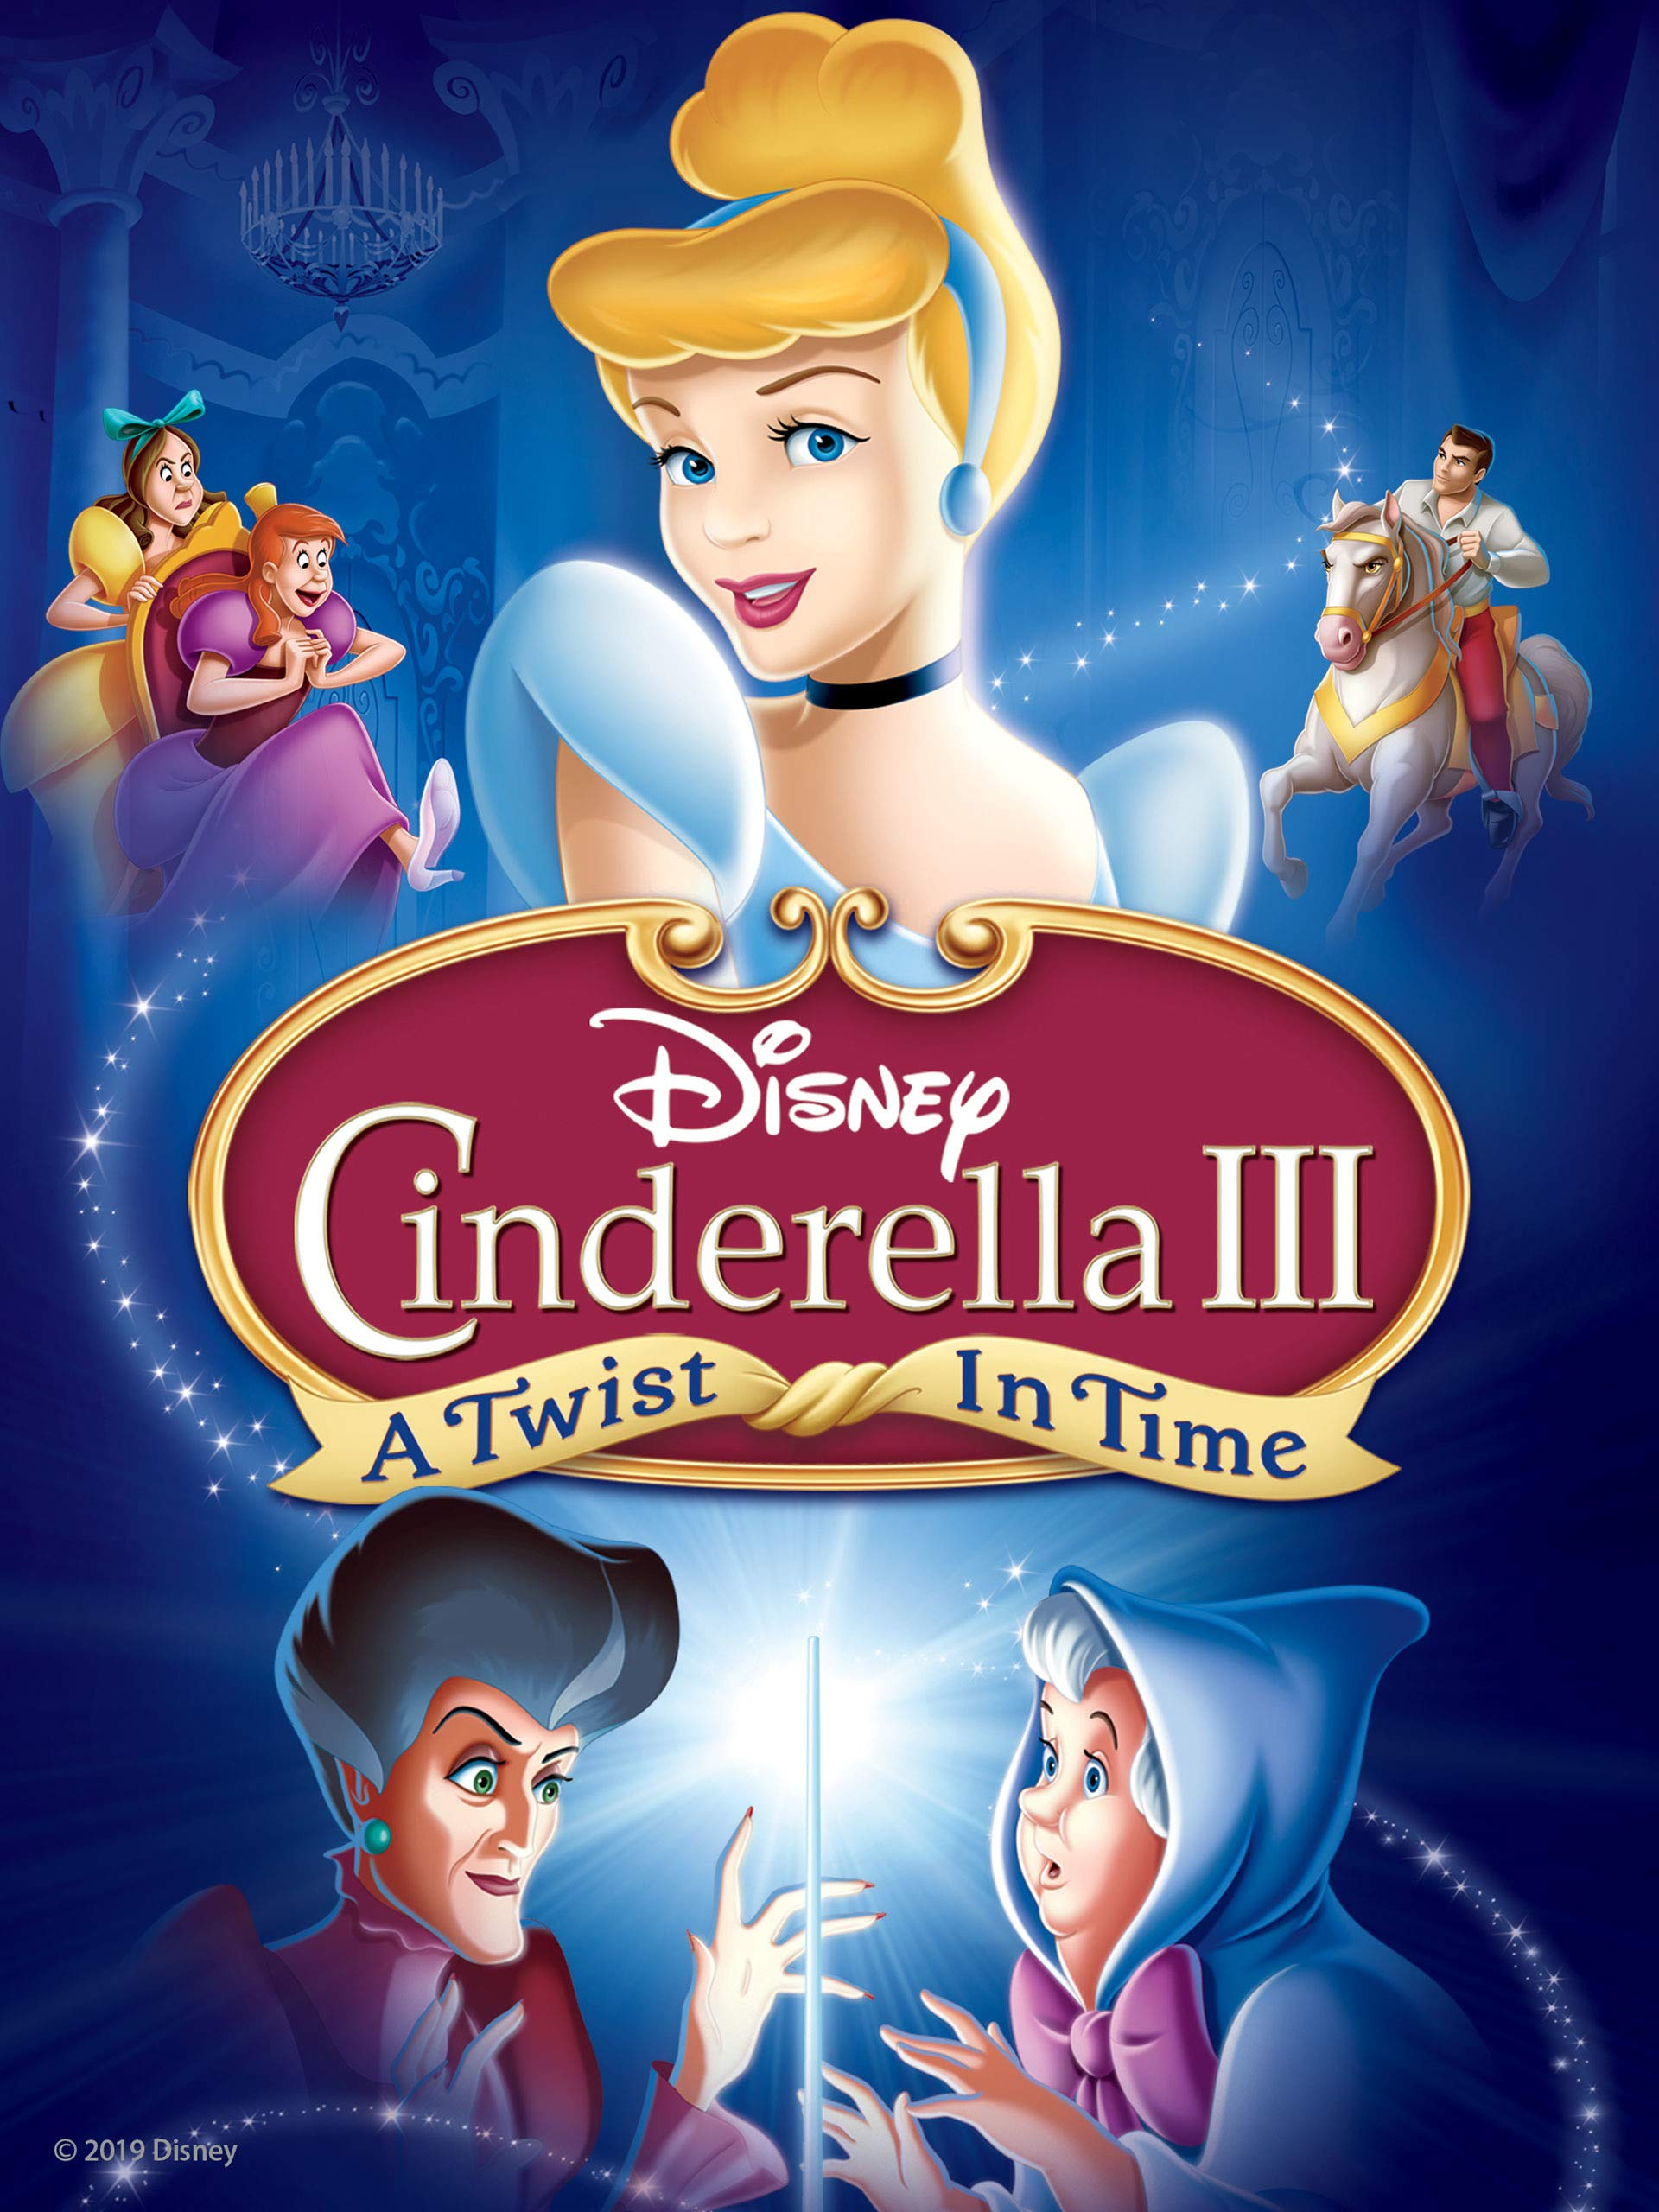 cinderella iii a twist in time full movie online free